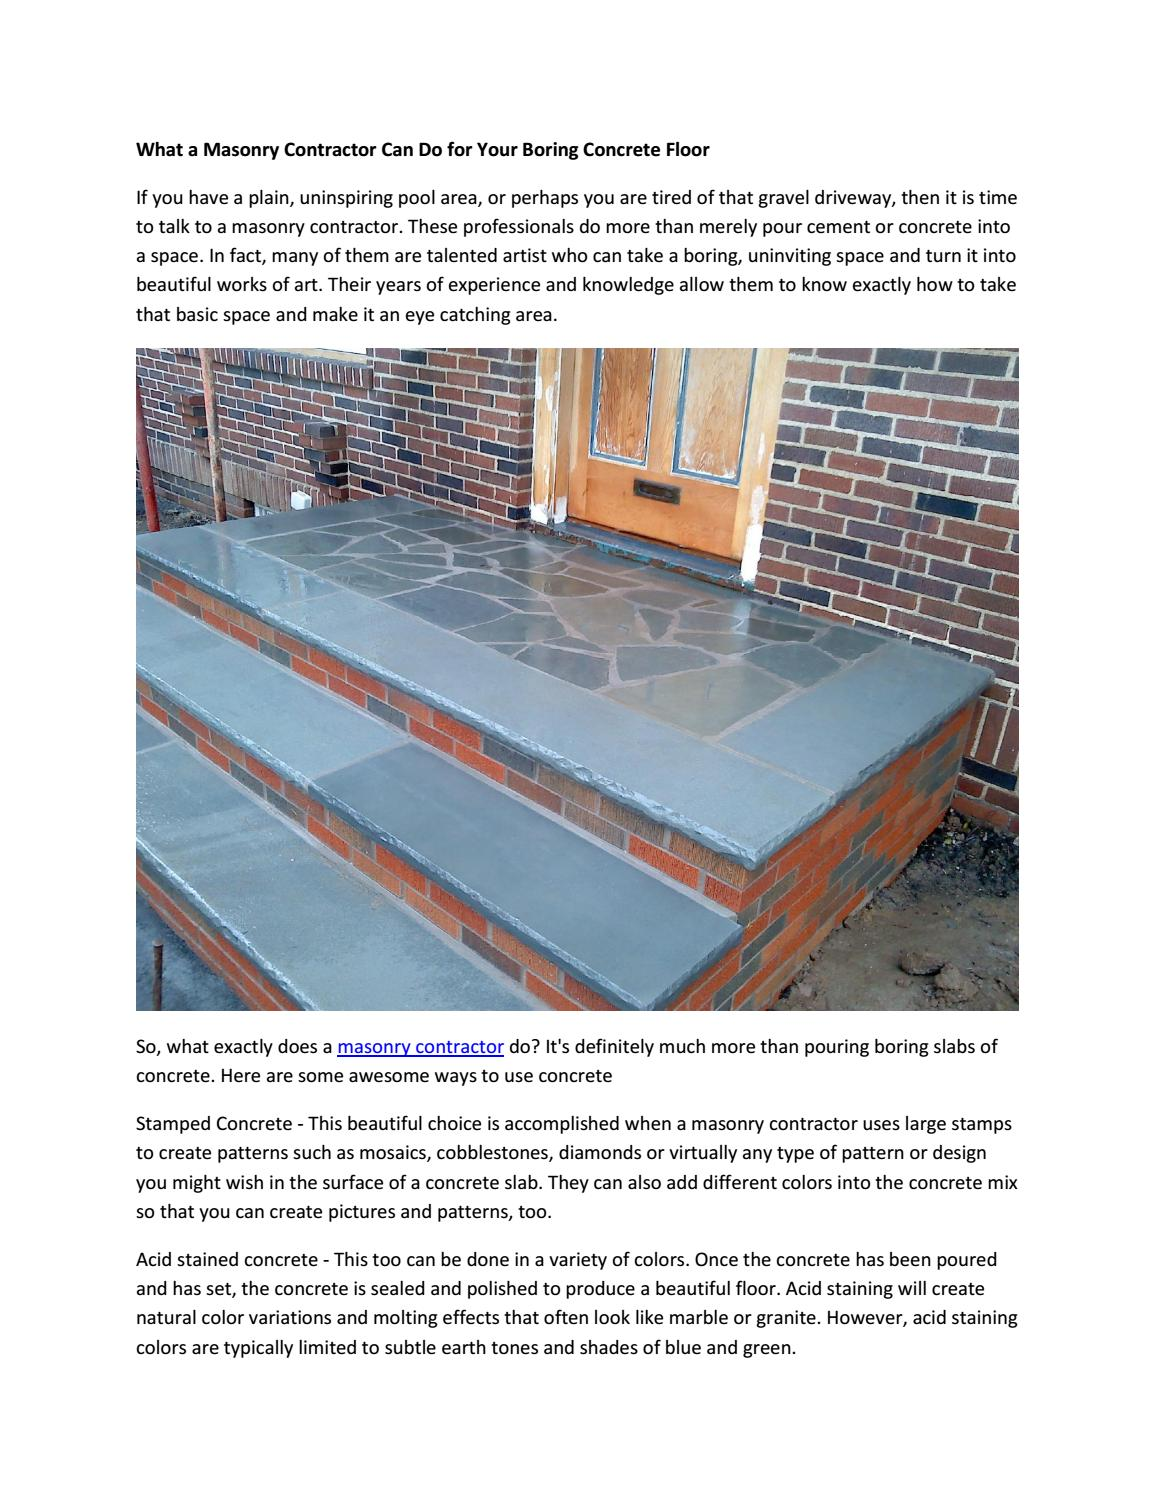 What Is The Difference Between Stamped Concrete And Stained Concrete are you looking a best masonry contractor in your near area